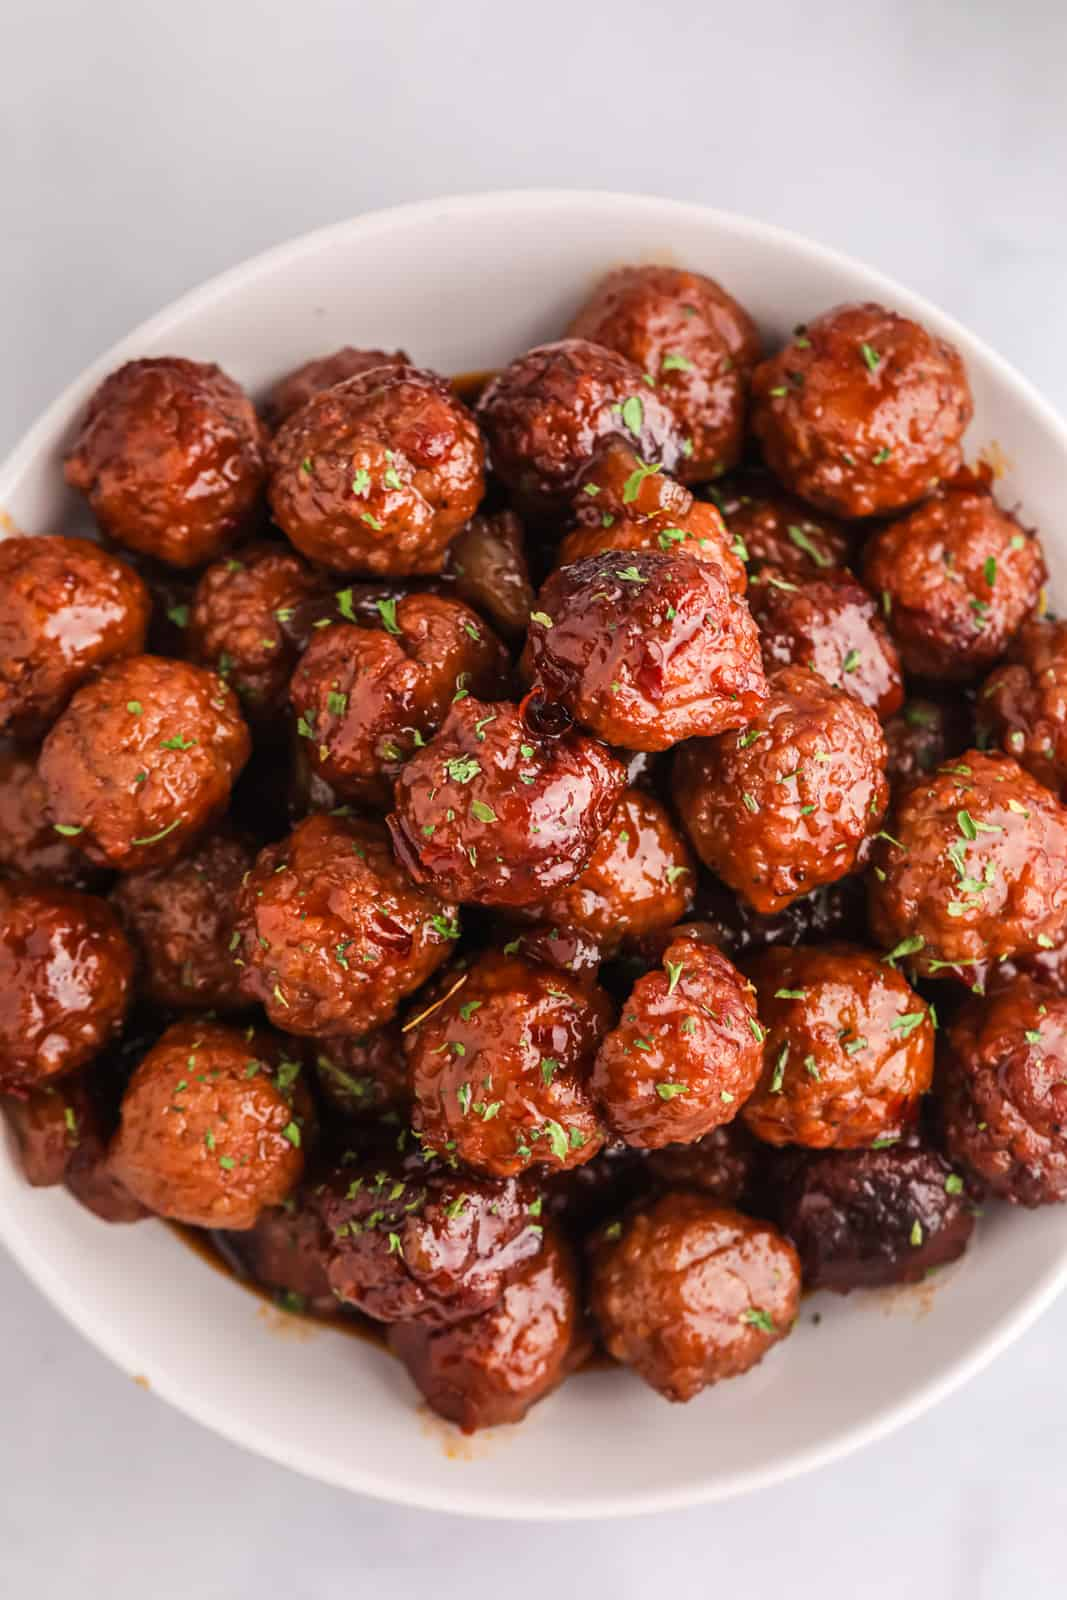 Overhead of meatballs stacked in white bowl with parsley